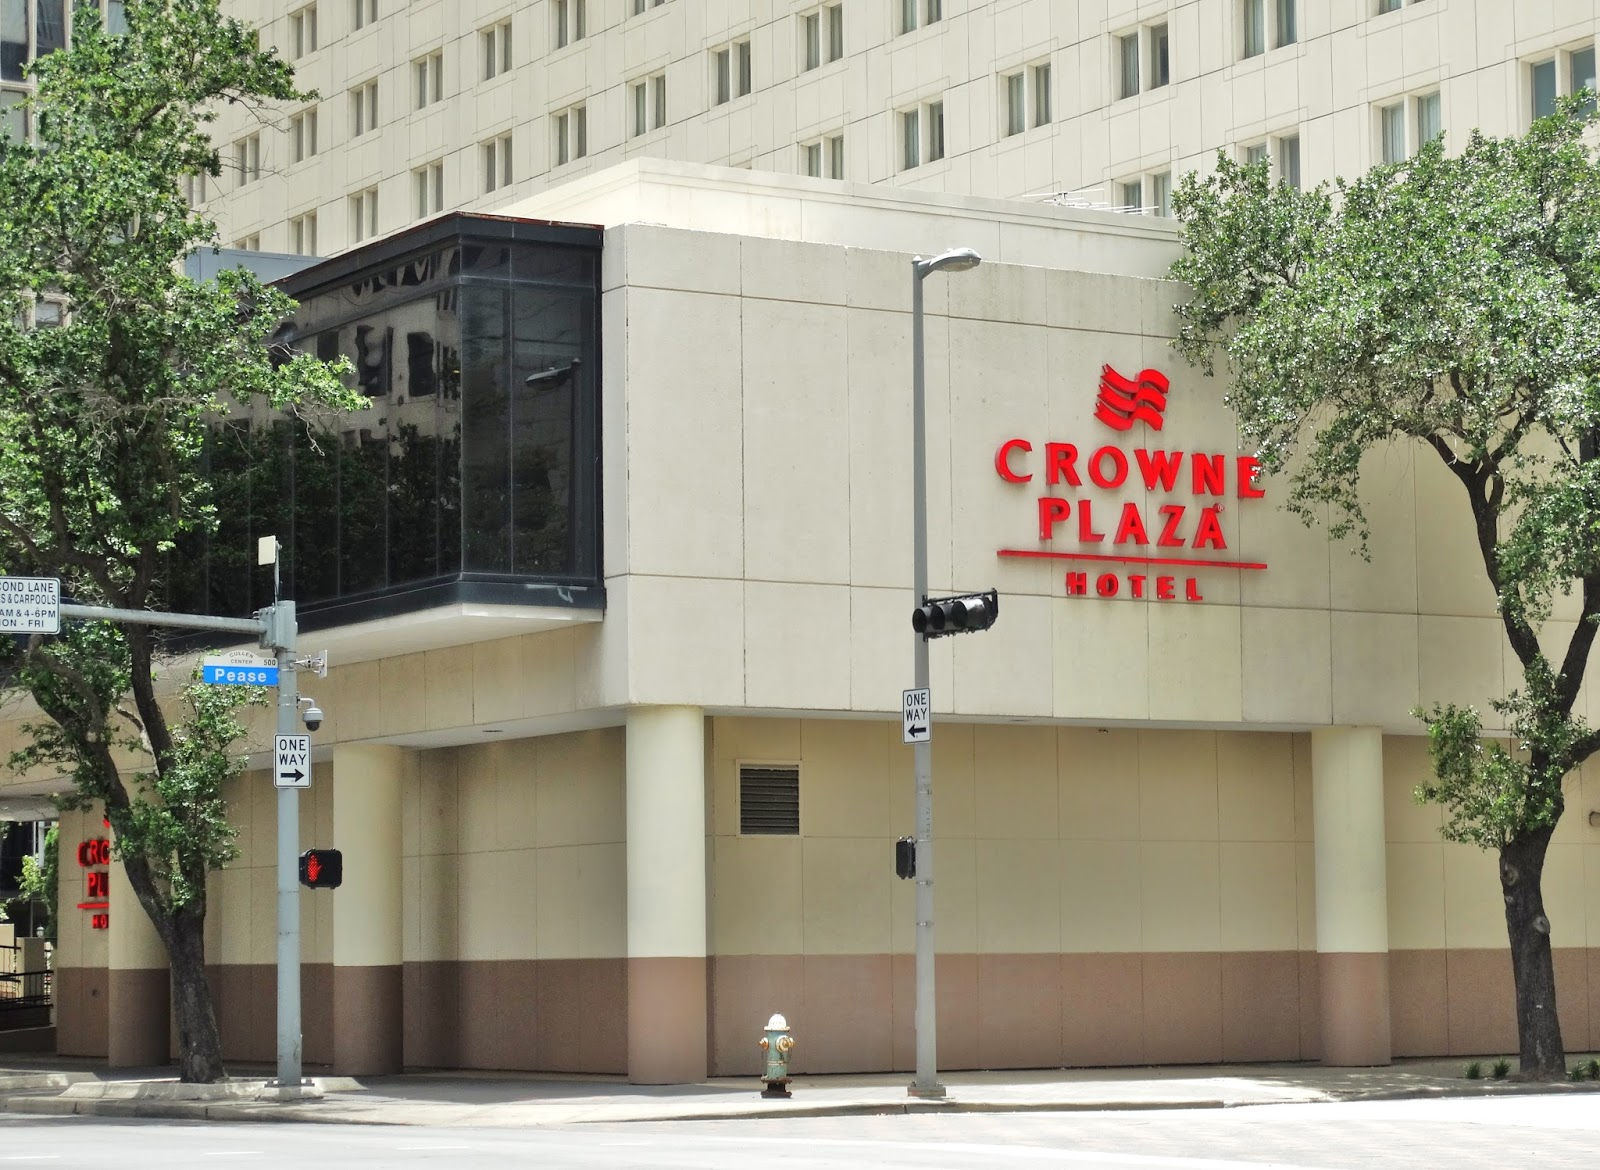 601 jefferson street houston tx 77002 - The Crowne Plaza Hotel At Cullen Center Linked To The Kbr Tower With Skybridge